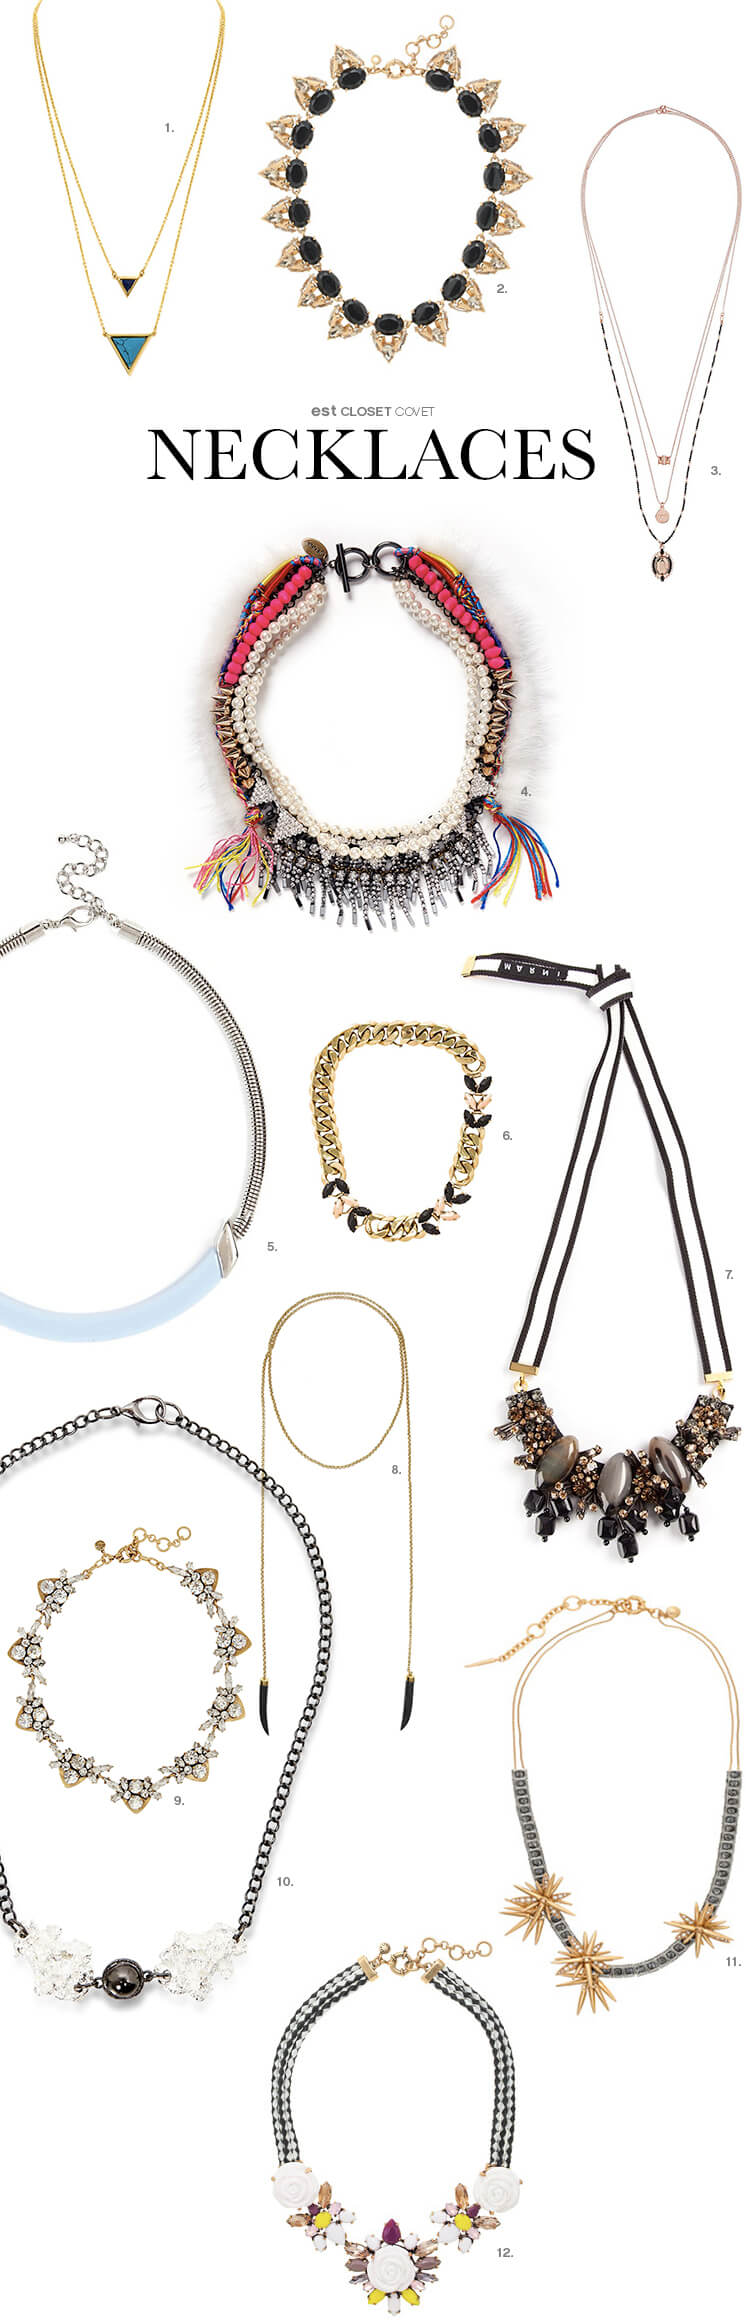 Closet-Covet-Necklaces-Est-Magazine